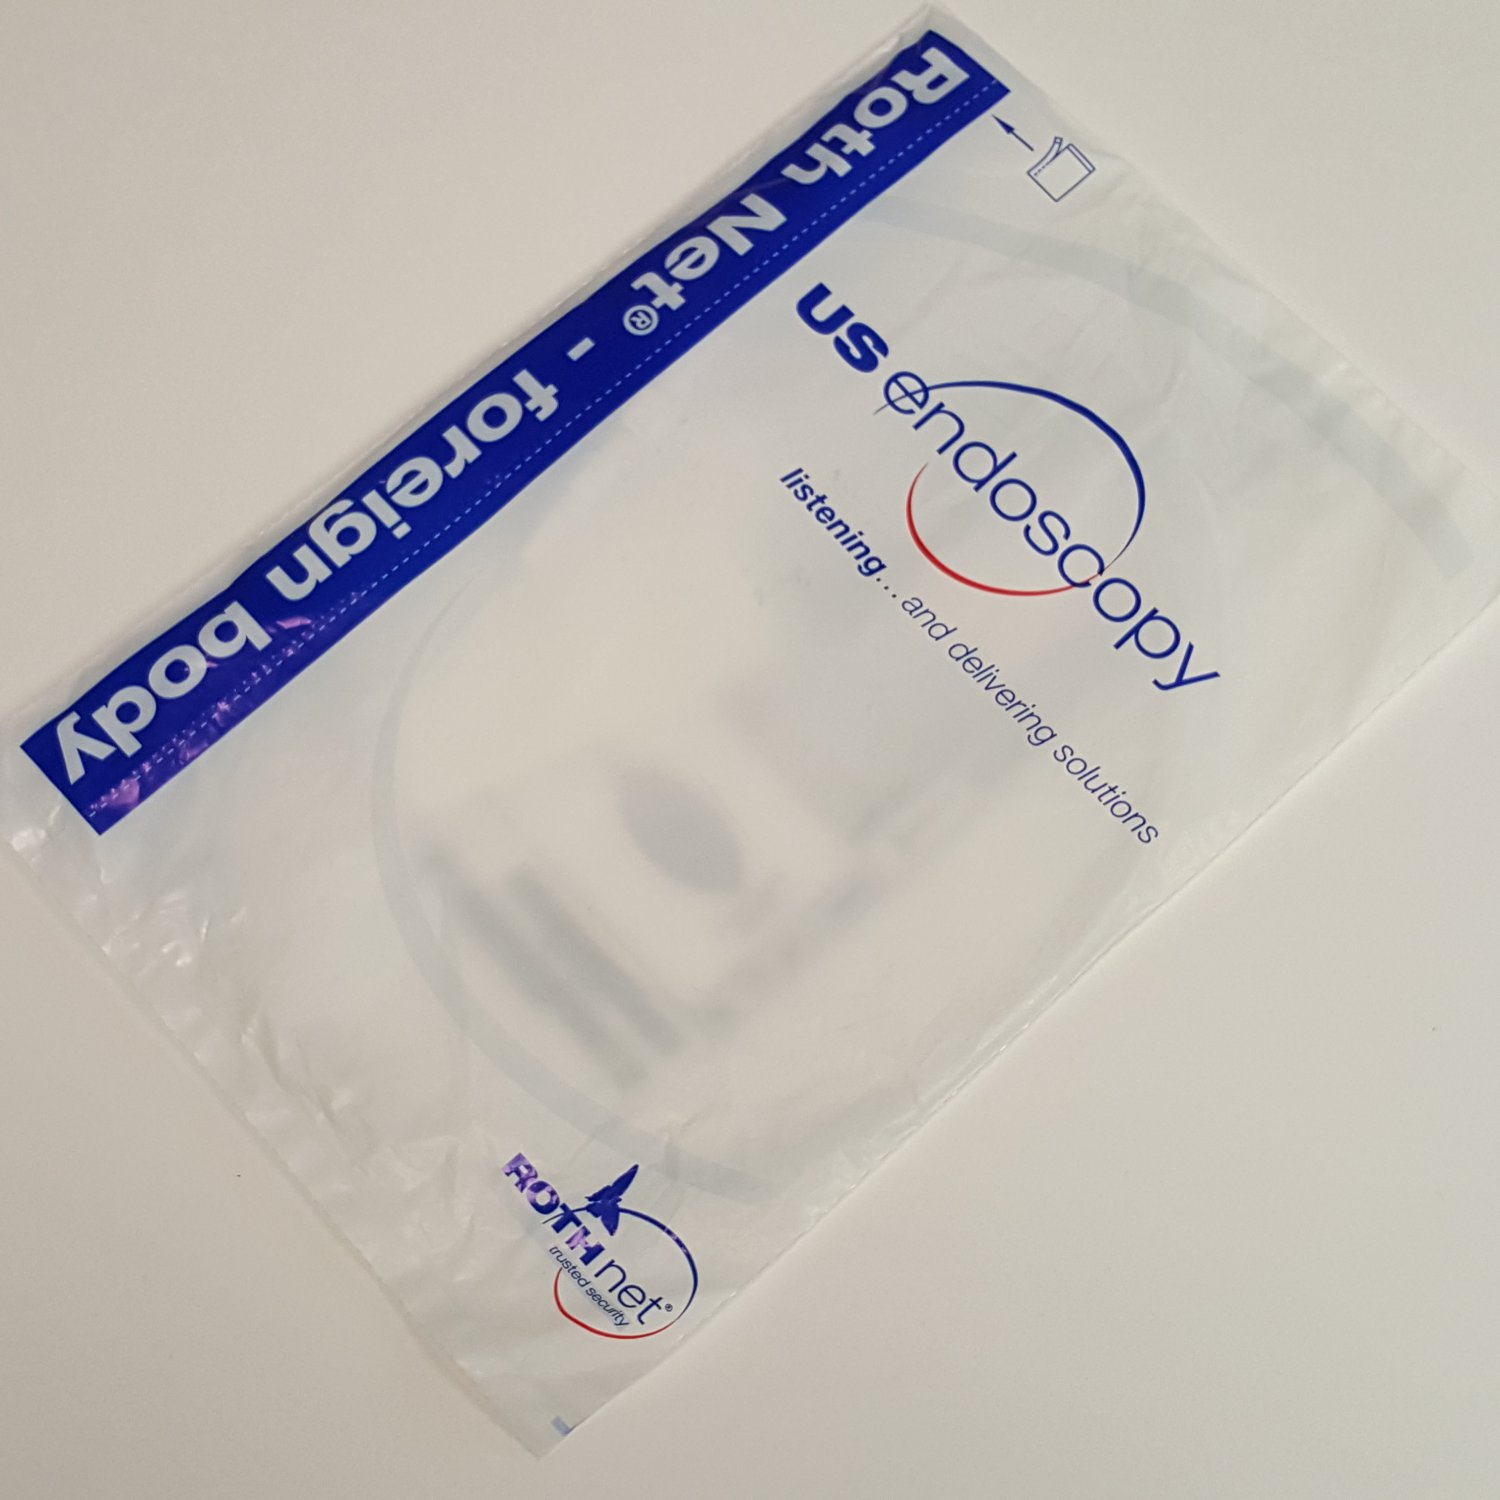 US Endoscopy Roth Net Foreign Body 00711052